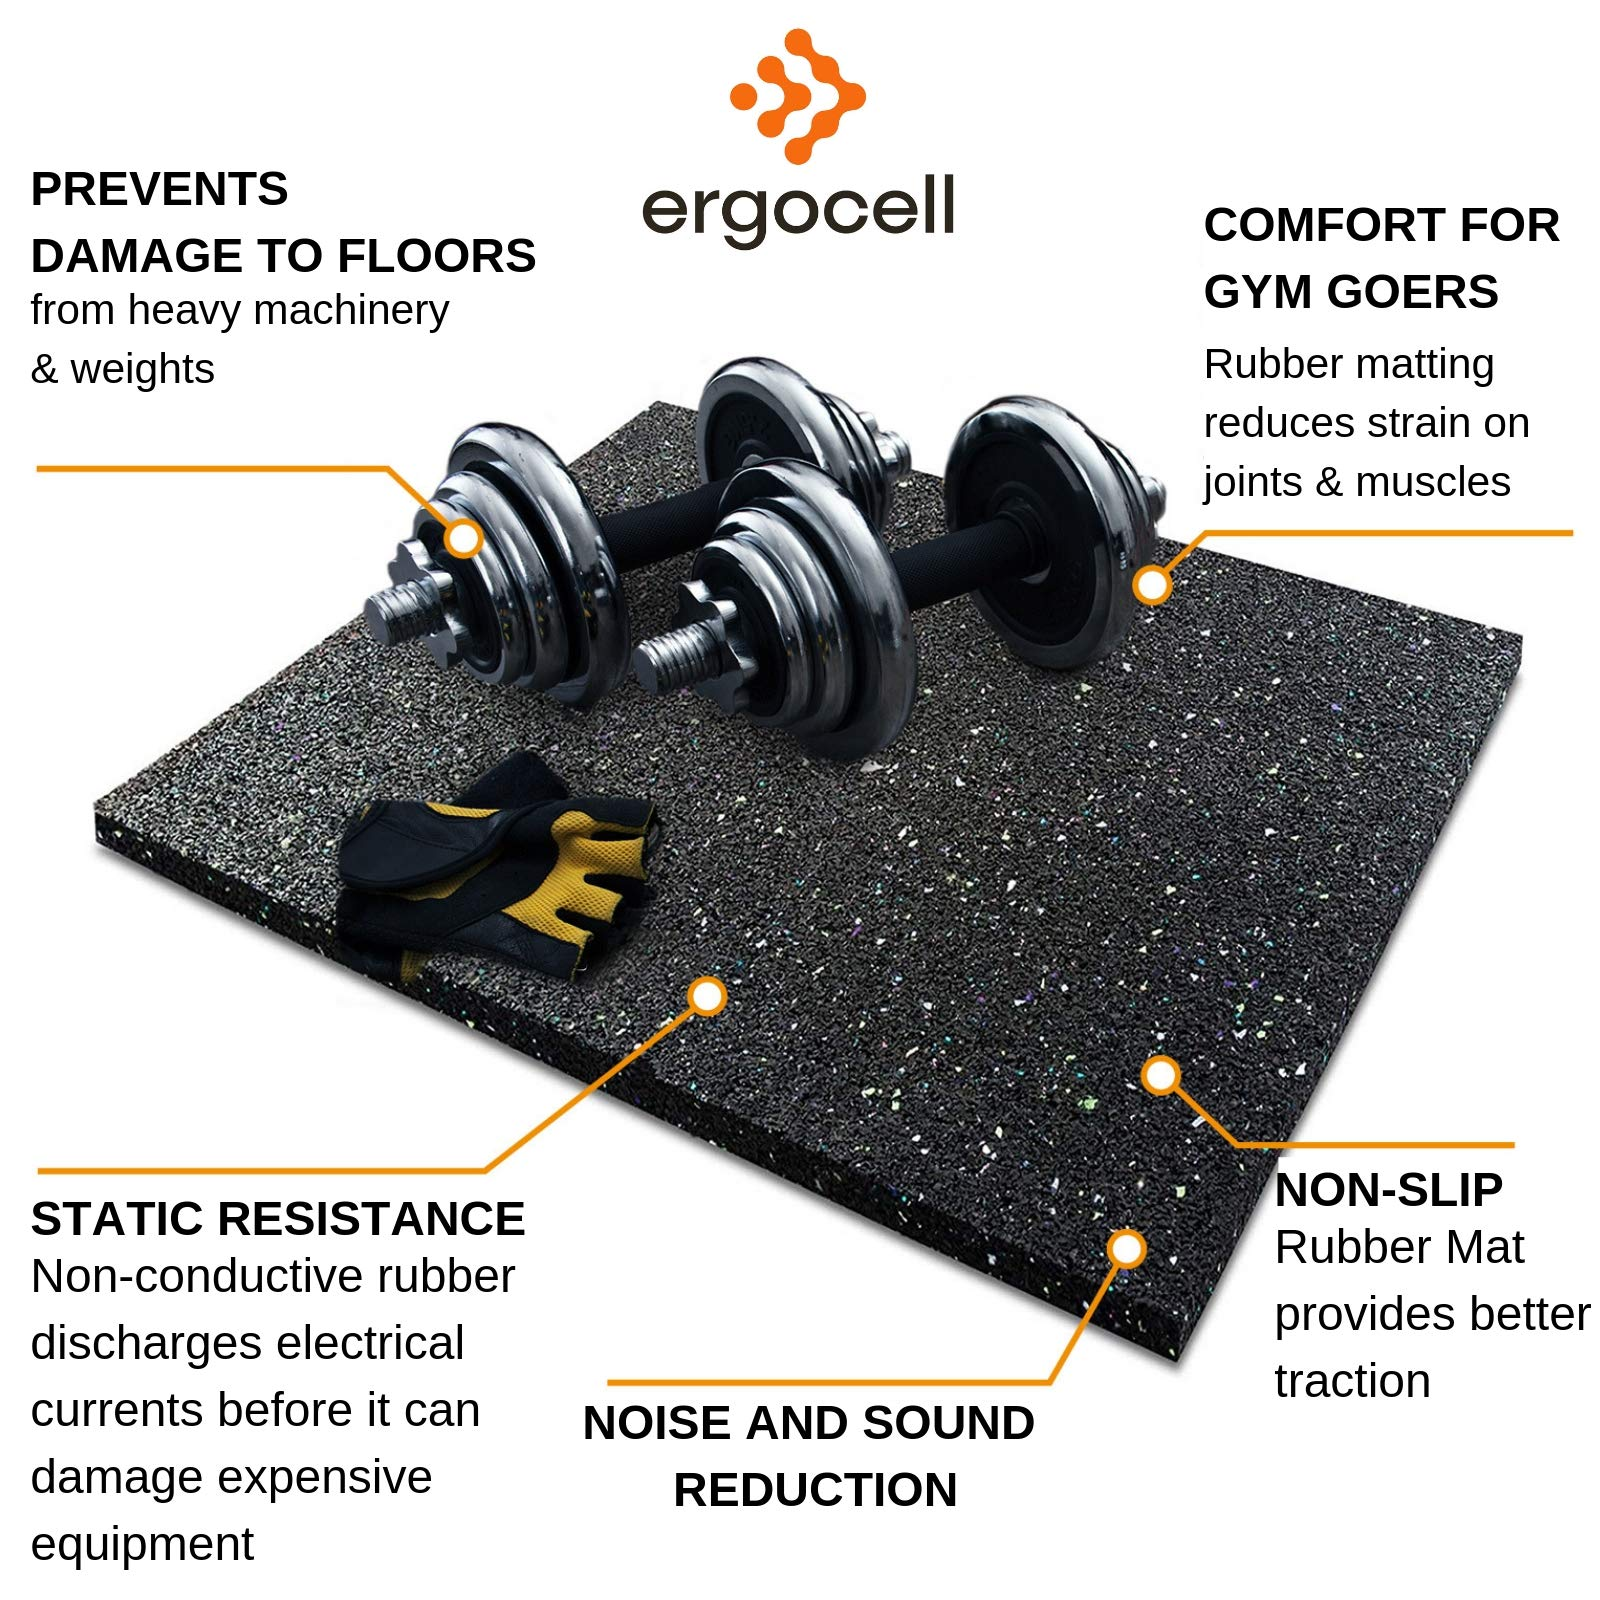 Ergocell Recycled Rubber Floor Mat – Shock Absorbent Gym Mat Flooring & Horse Stall Mat | Three Thicknesses, Multiple Sizes | 3/8'' - 2' x 7' by Ergocell (Image #7)